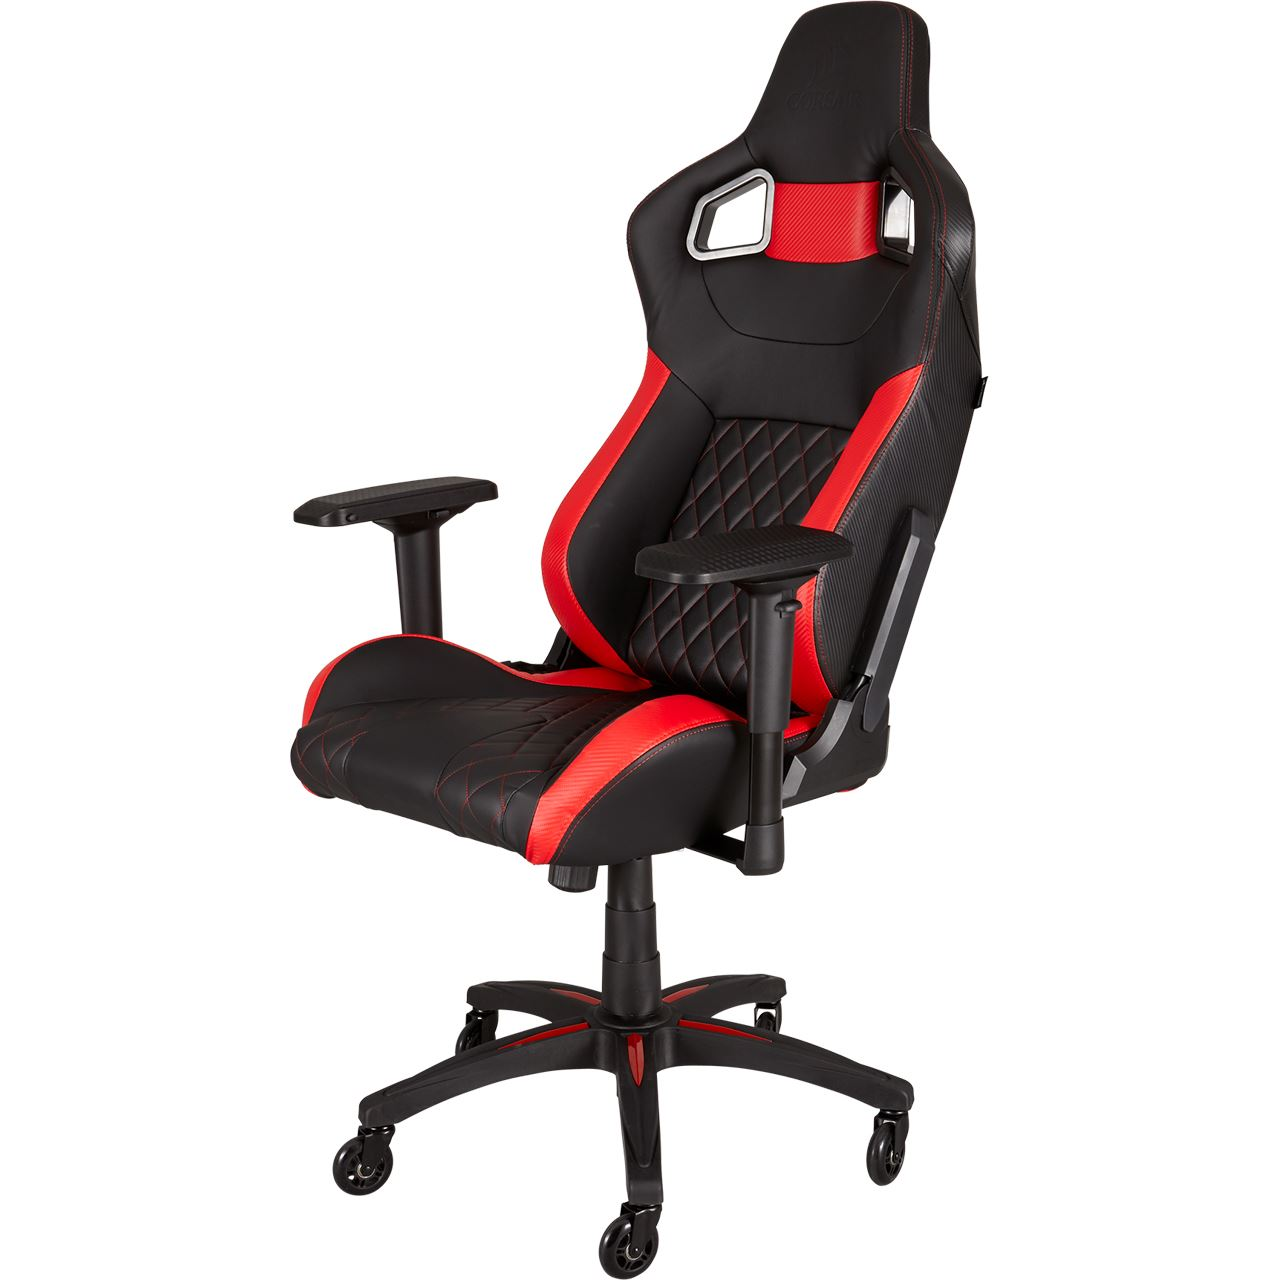 Gamer Sessel Test Gamer Sessel Media Markt